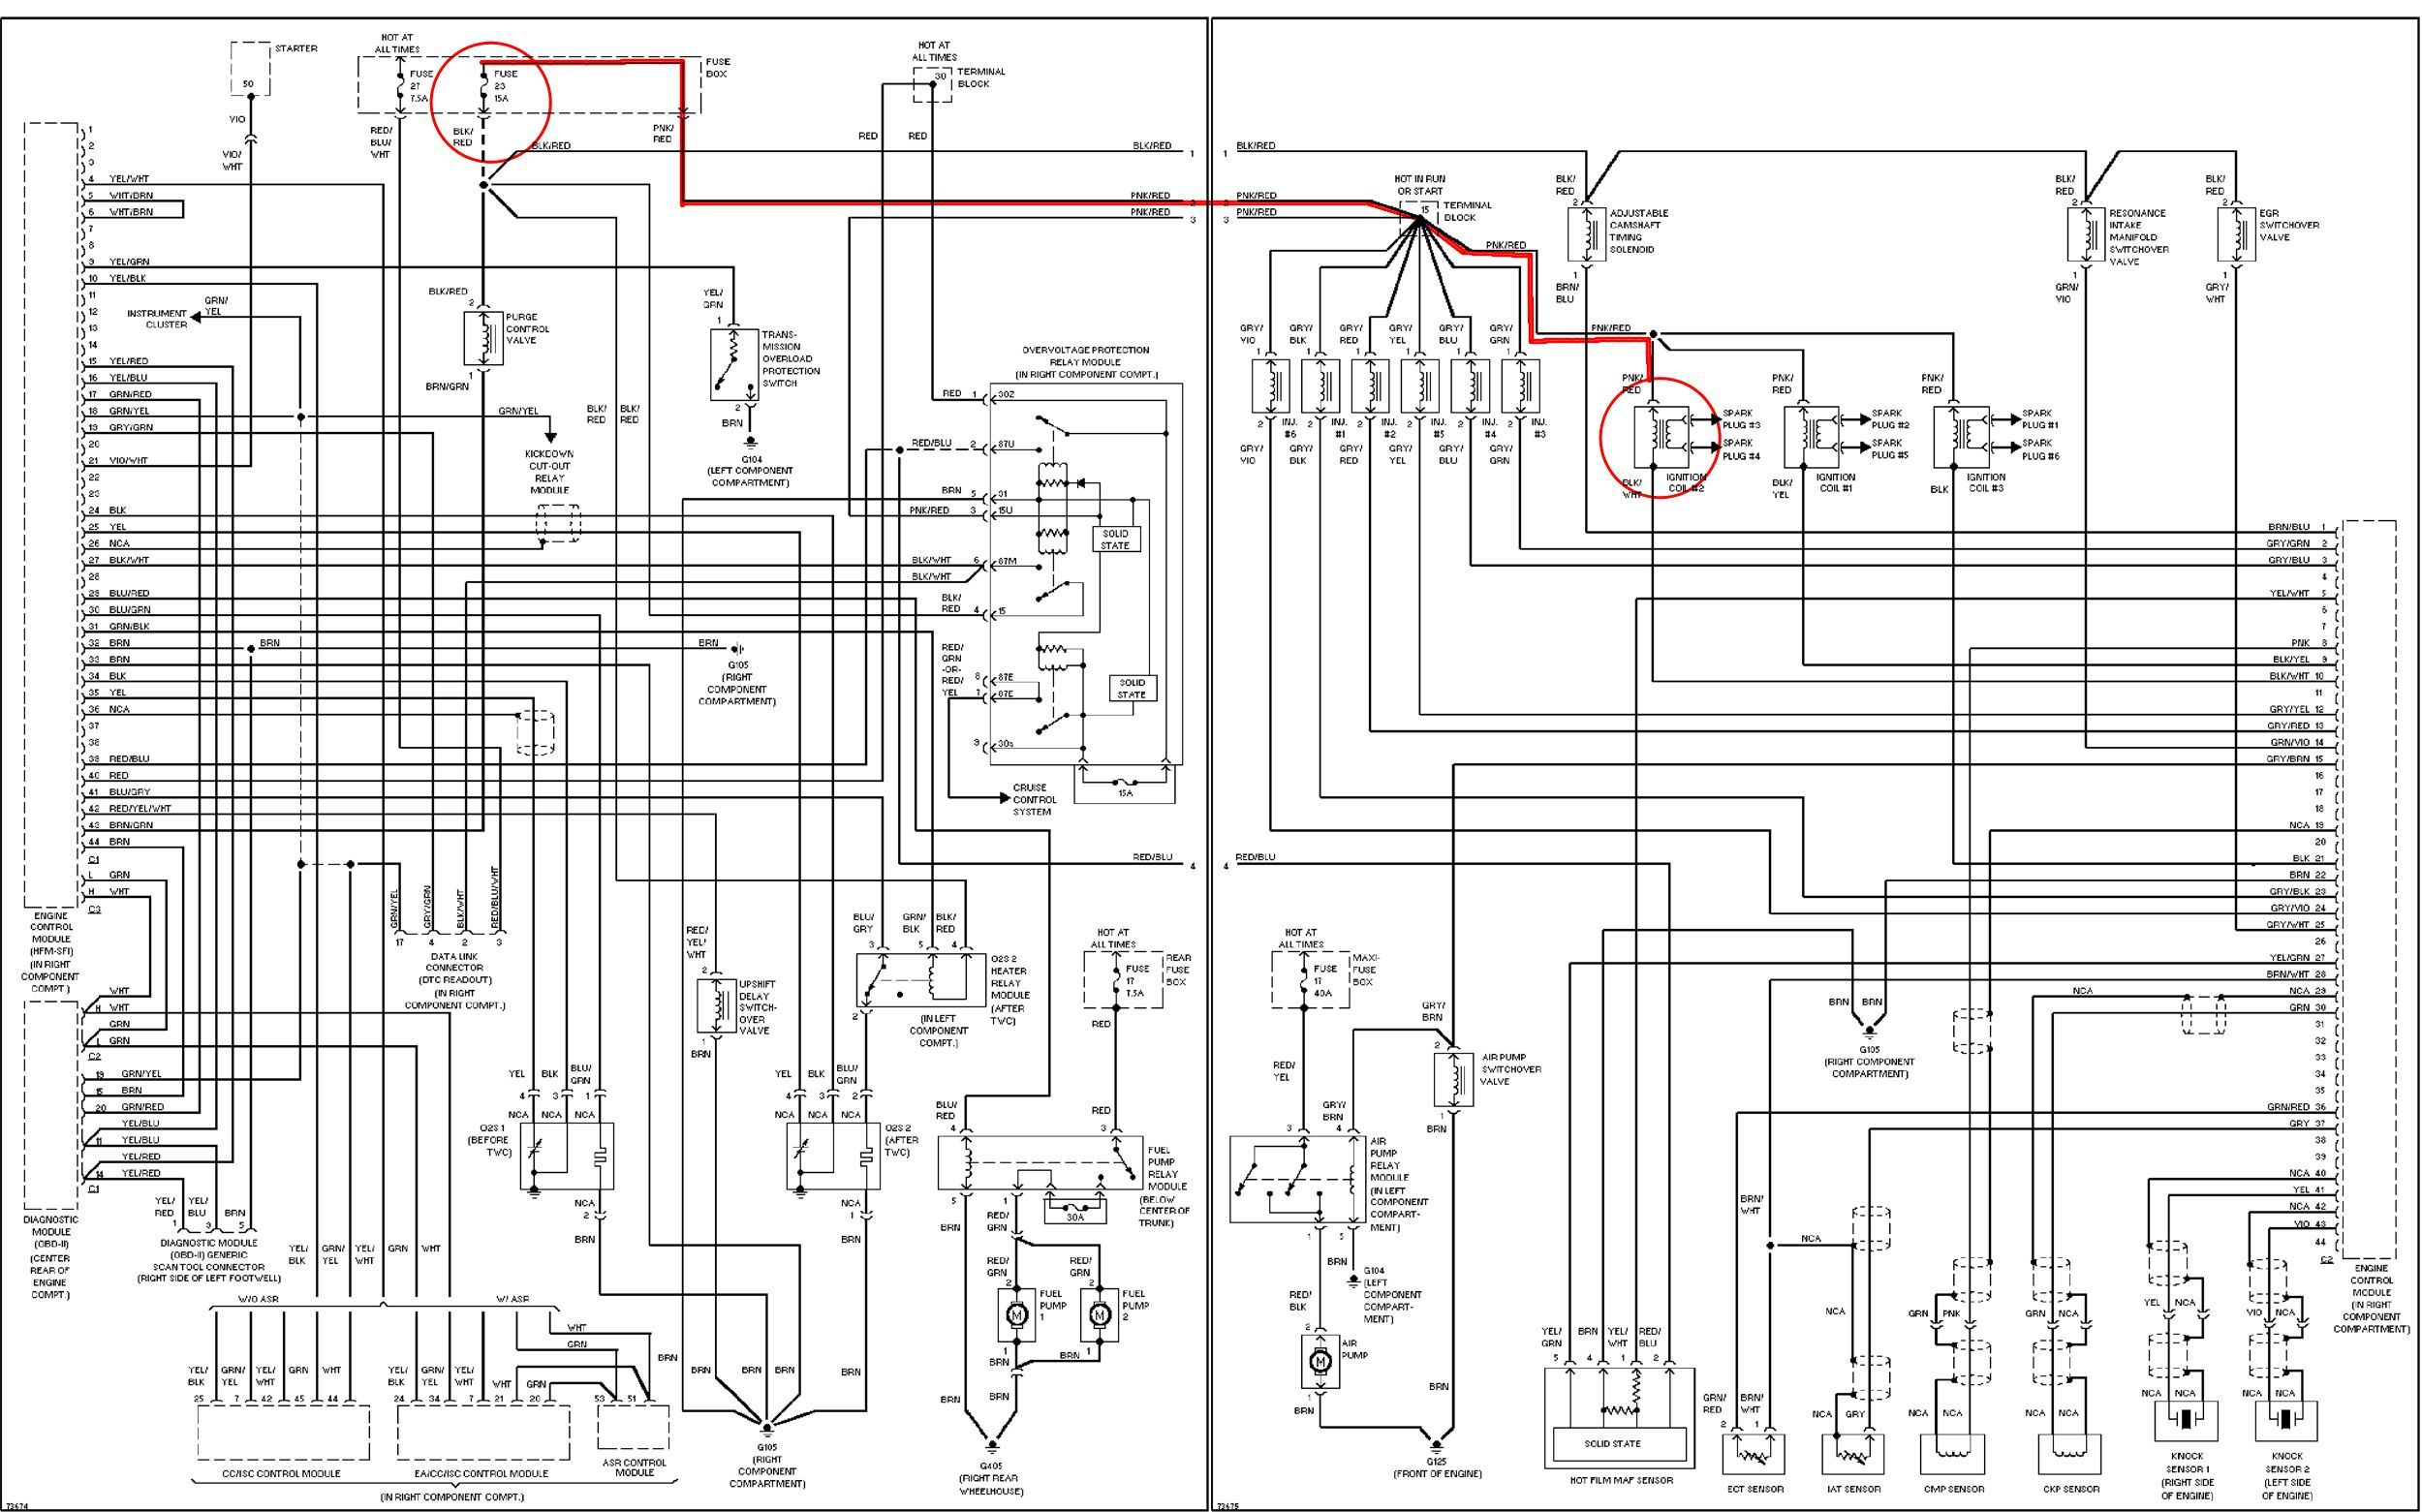 k1blm to mercedes benz wiring diagram wiring schematics honda wiring diagram mercedes wiring diagram – free